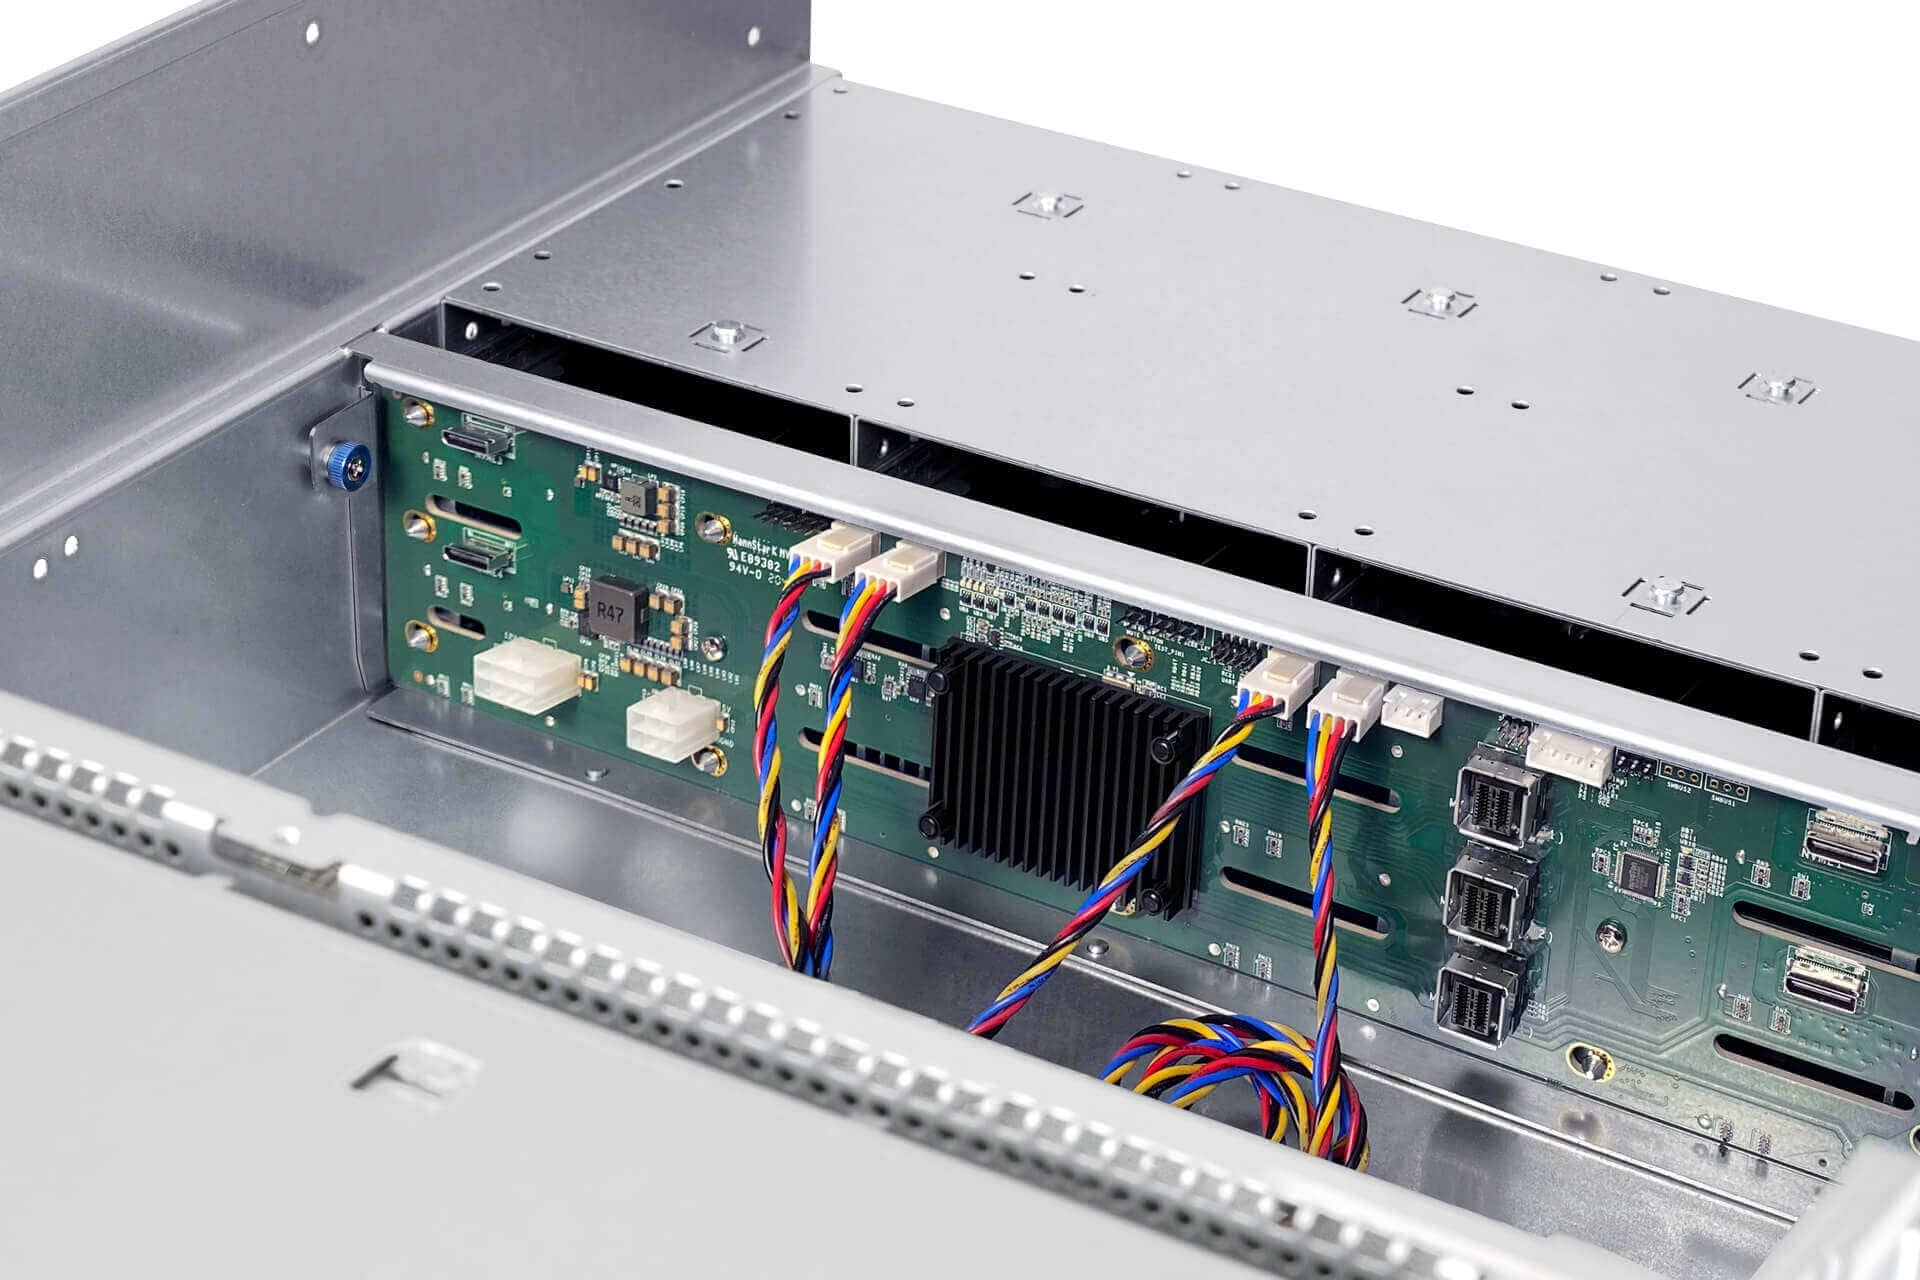 IW-RS436-07 - server system assembly